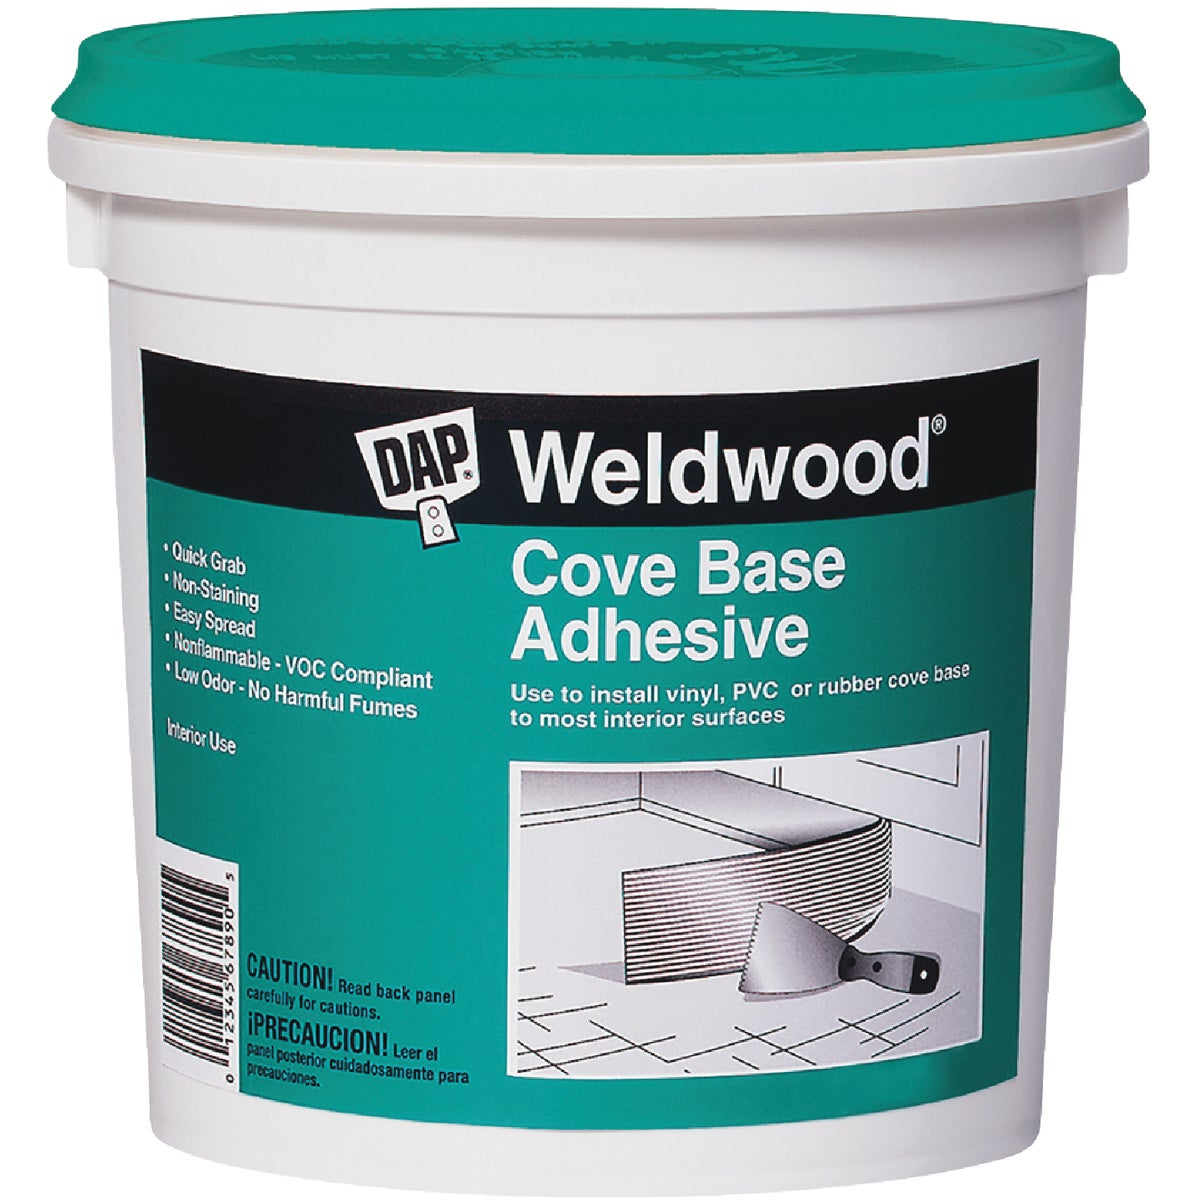 Qt Cove Base Adhesive